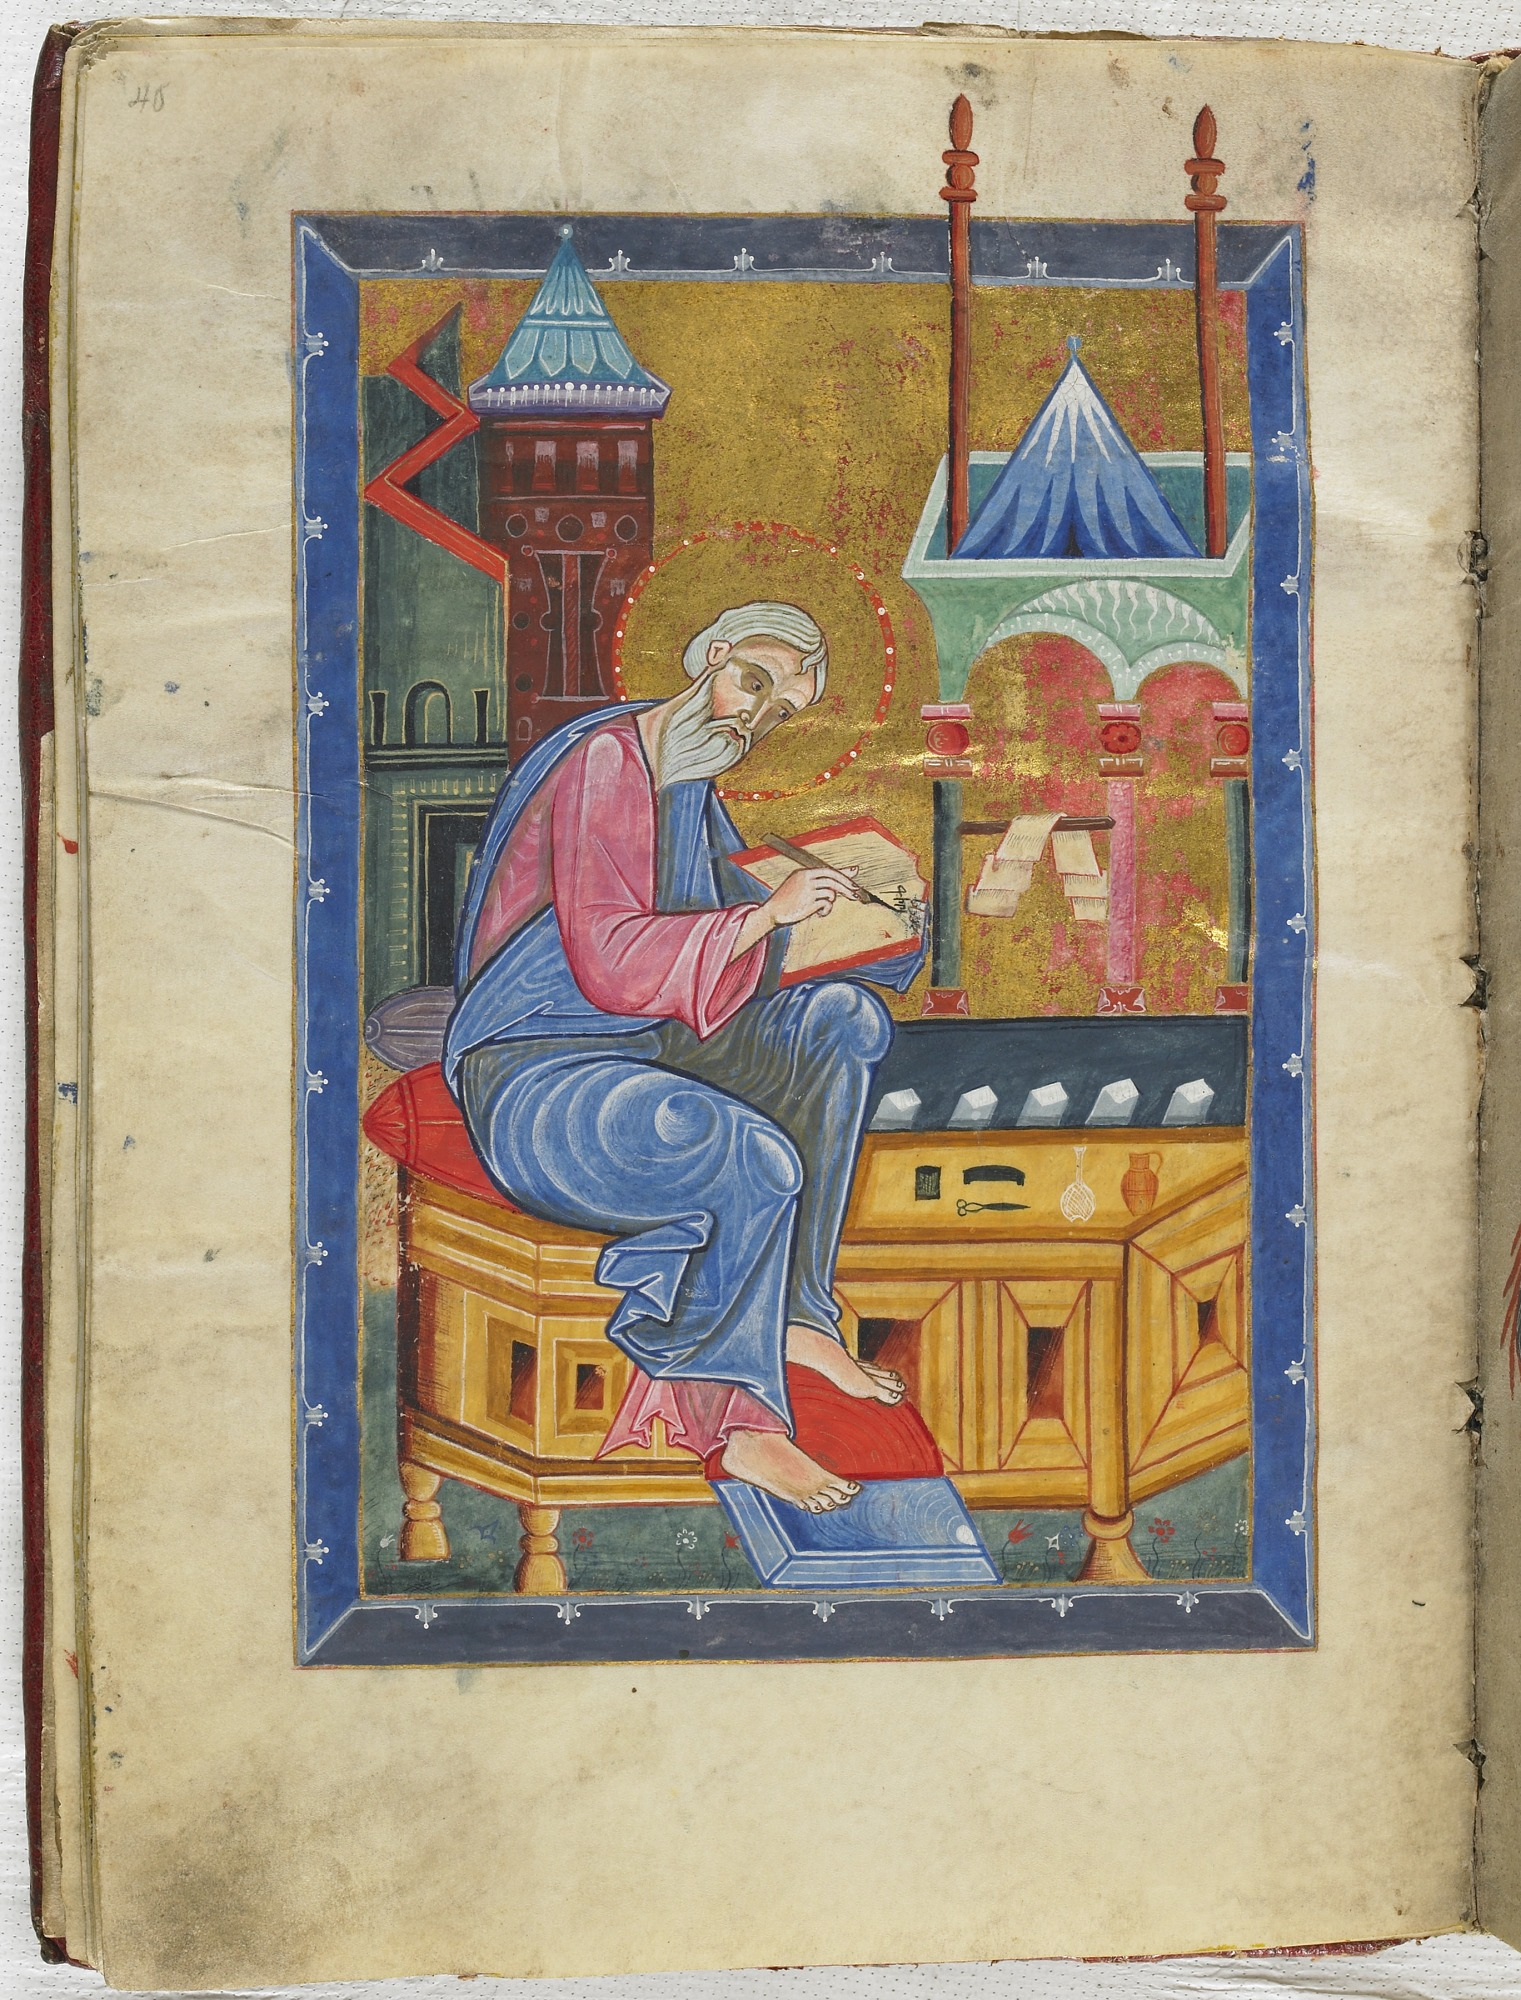 folio 40: The Gospel according to the Four Evangelists